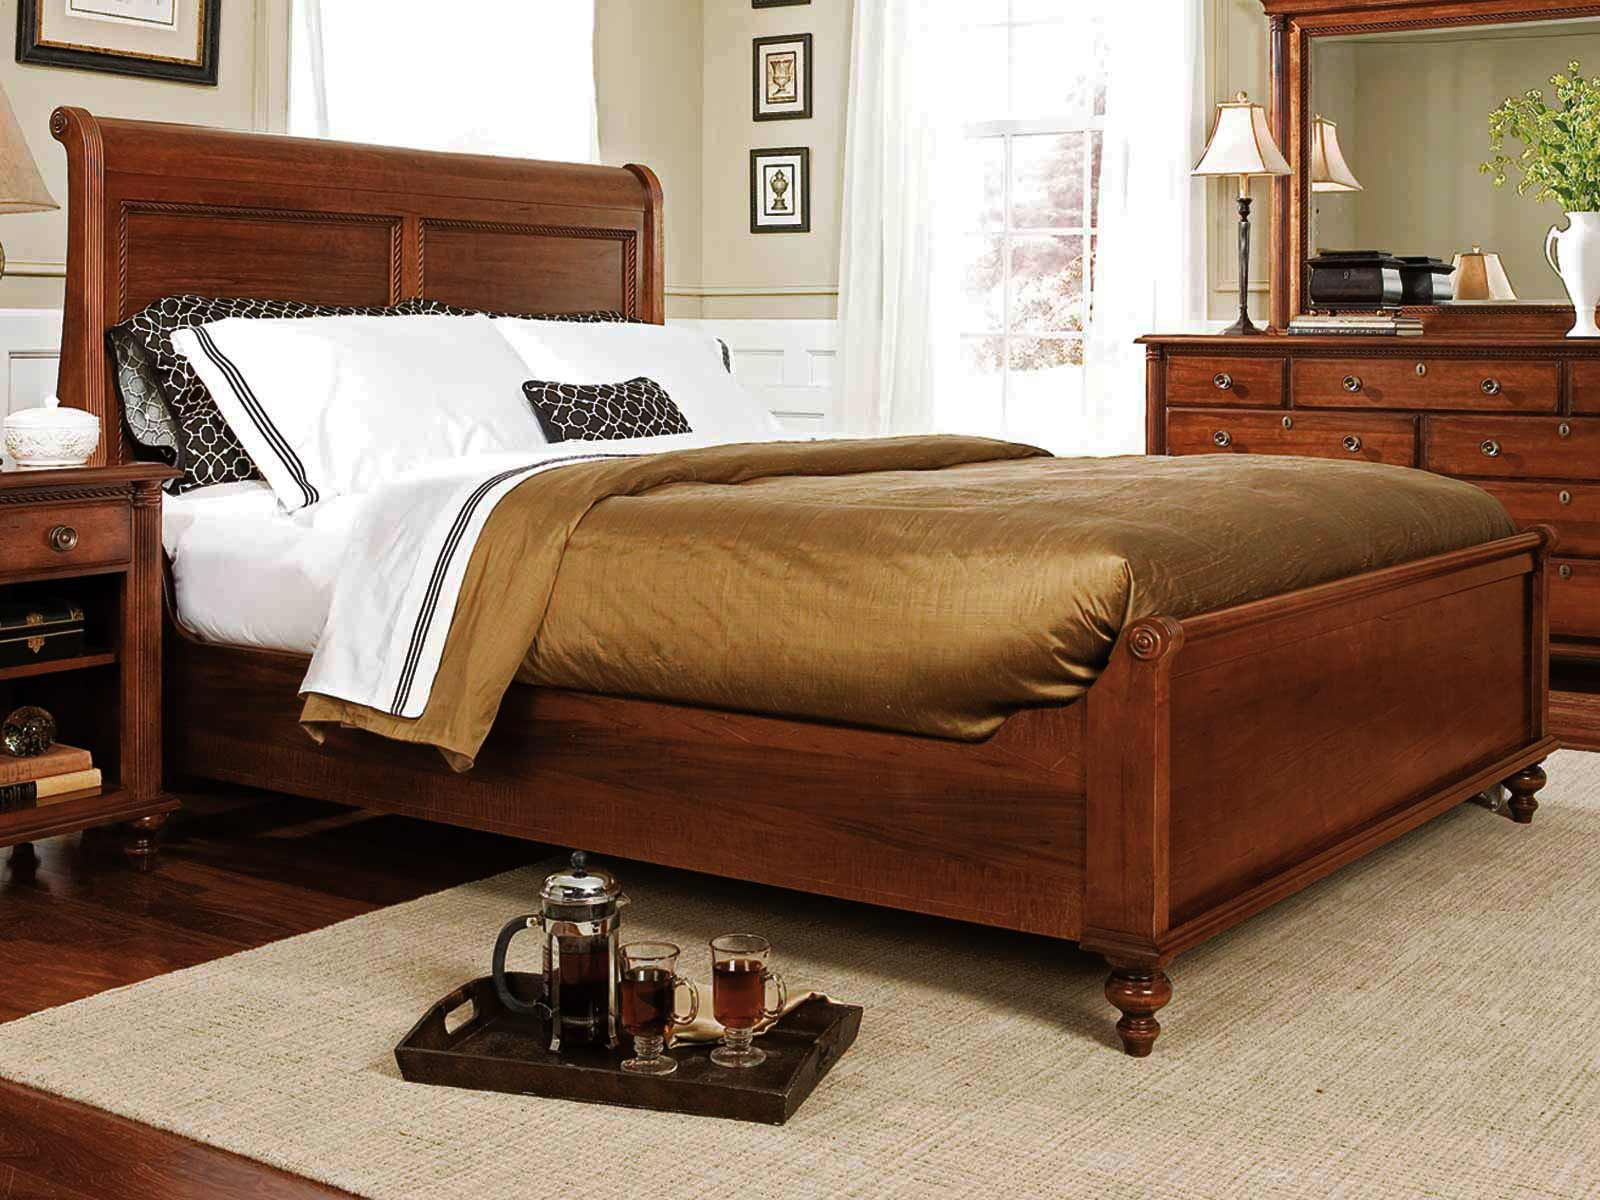 Durham furniture savile row king sleigh bed w low footboard in victorian mahogany 980